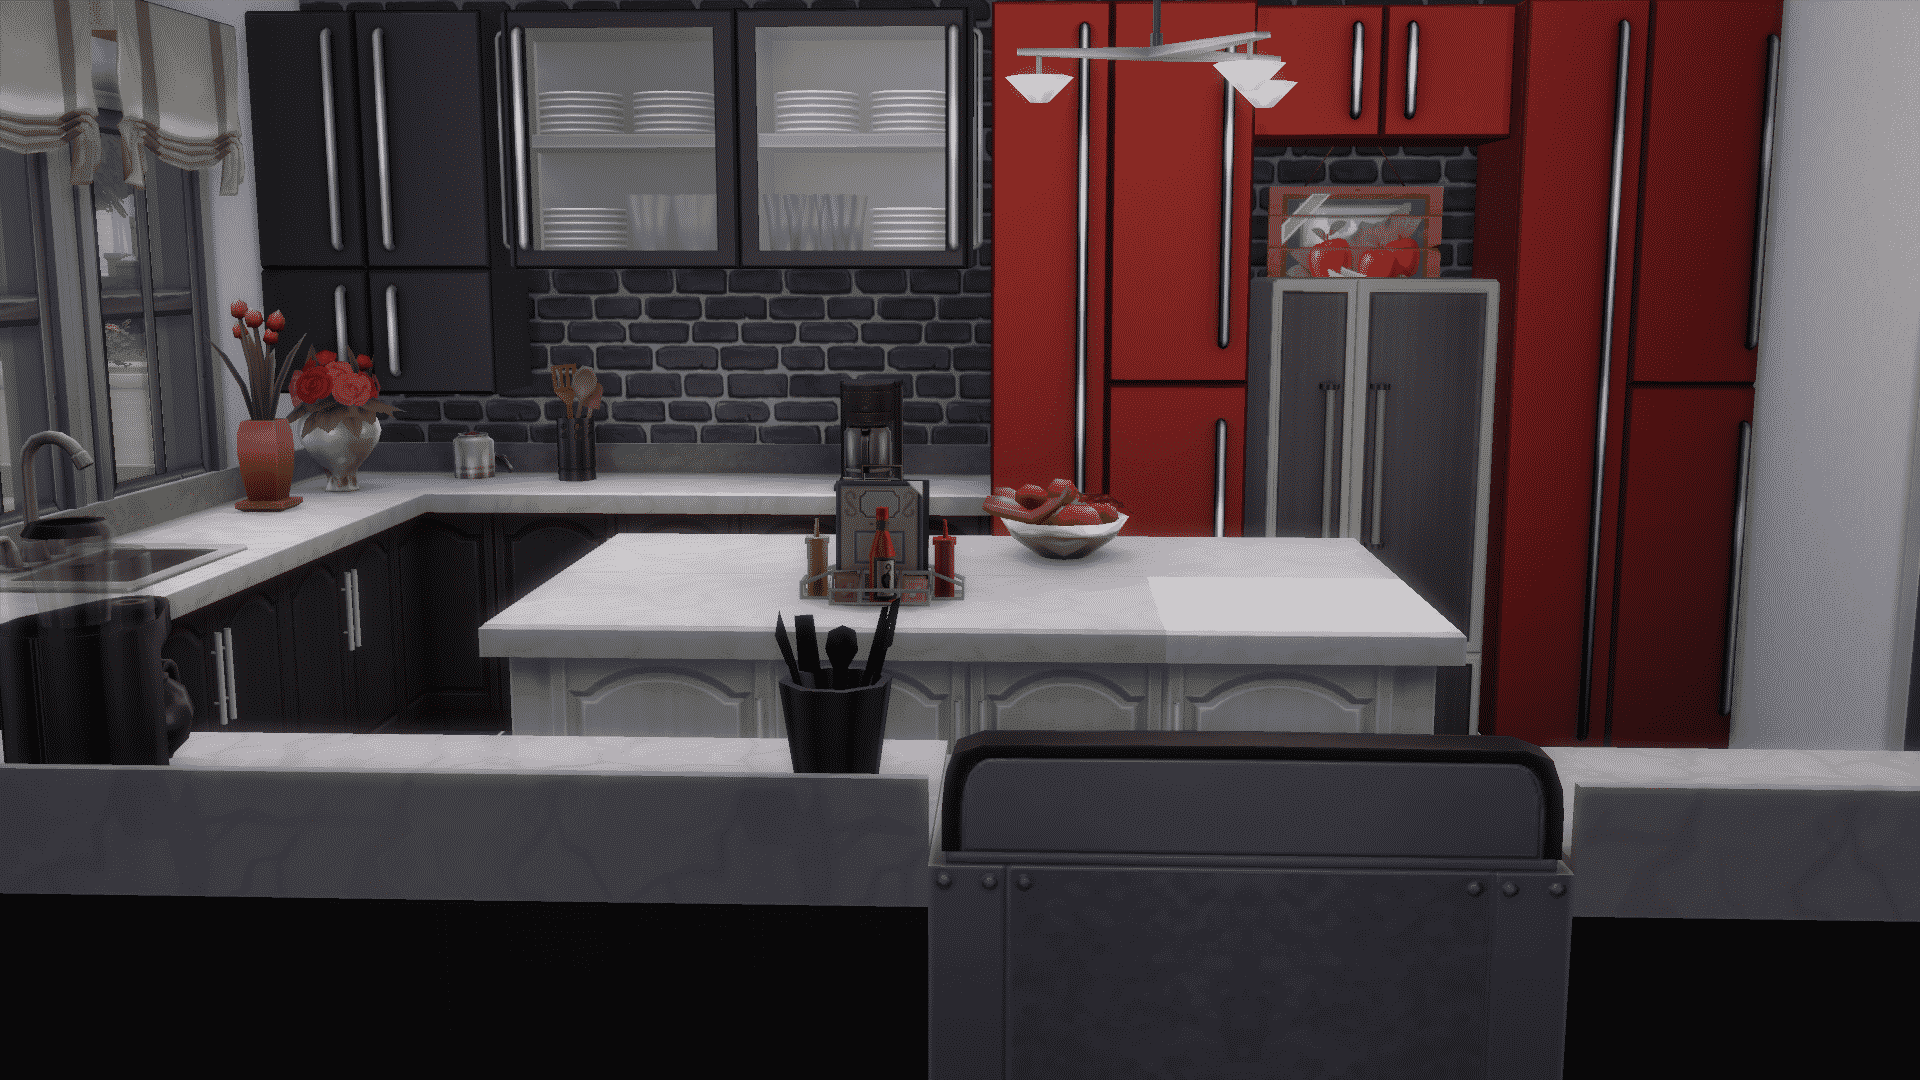 The Sims 4: Interior Design Guide - Sims Community